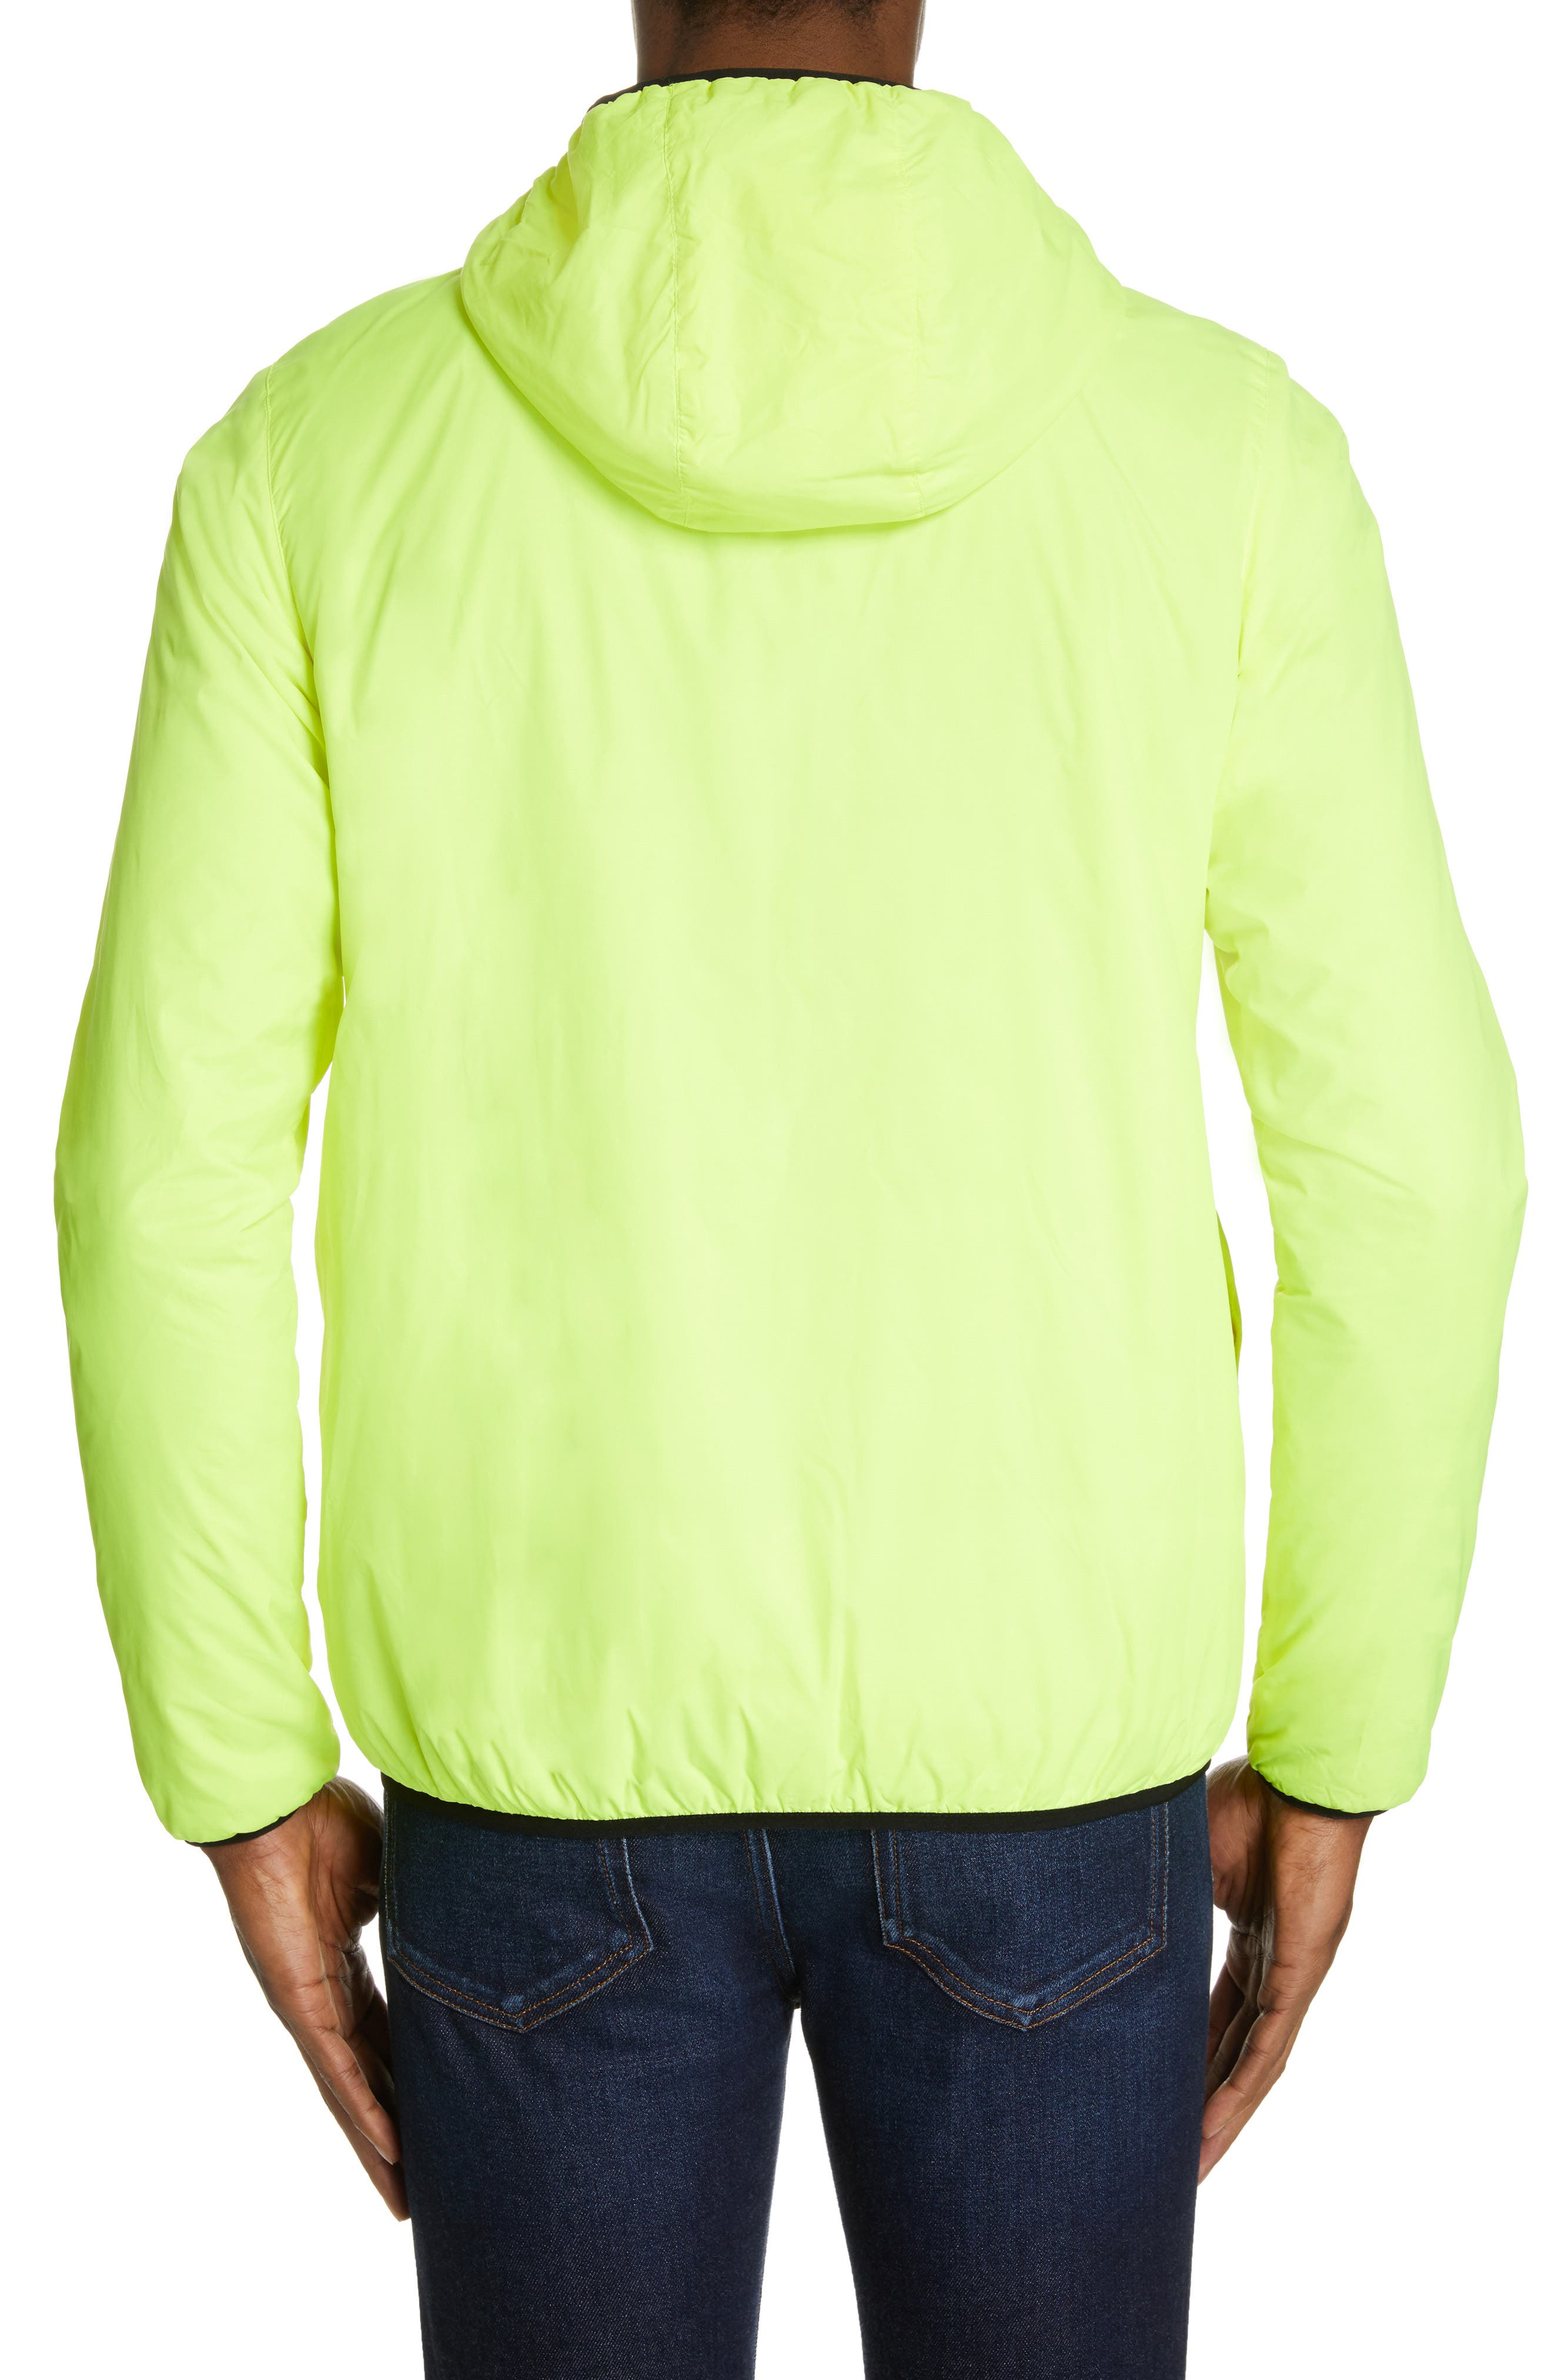 Le Vrai 3.0 Claude Light Warm Water Resistant Hooded Windbreaker,                             Alternate thumbnail 3, color,                             YELLOW FLUO